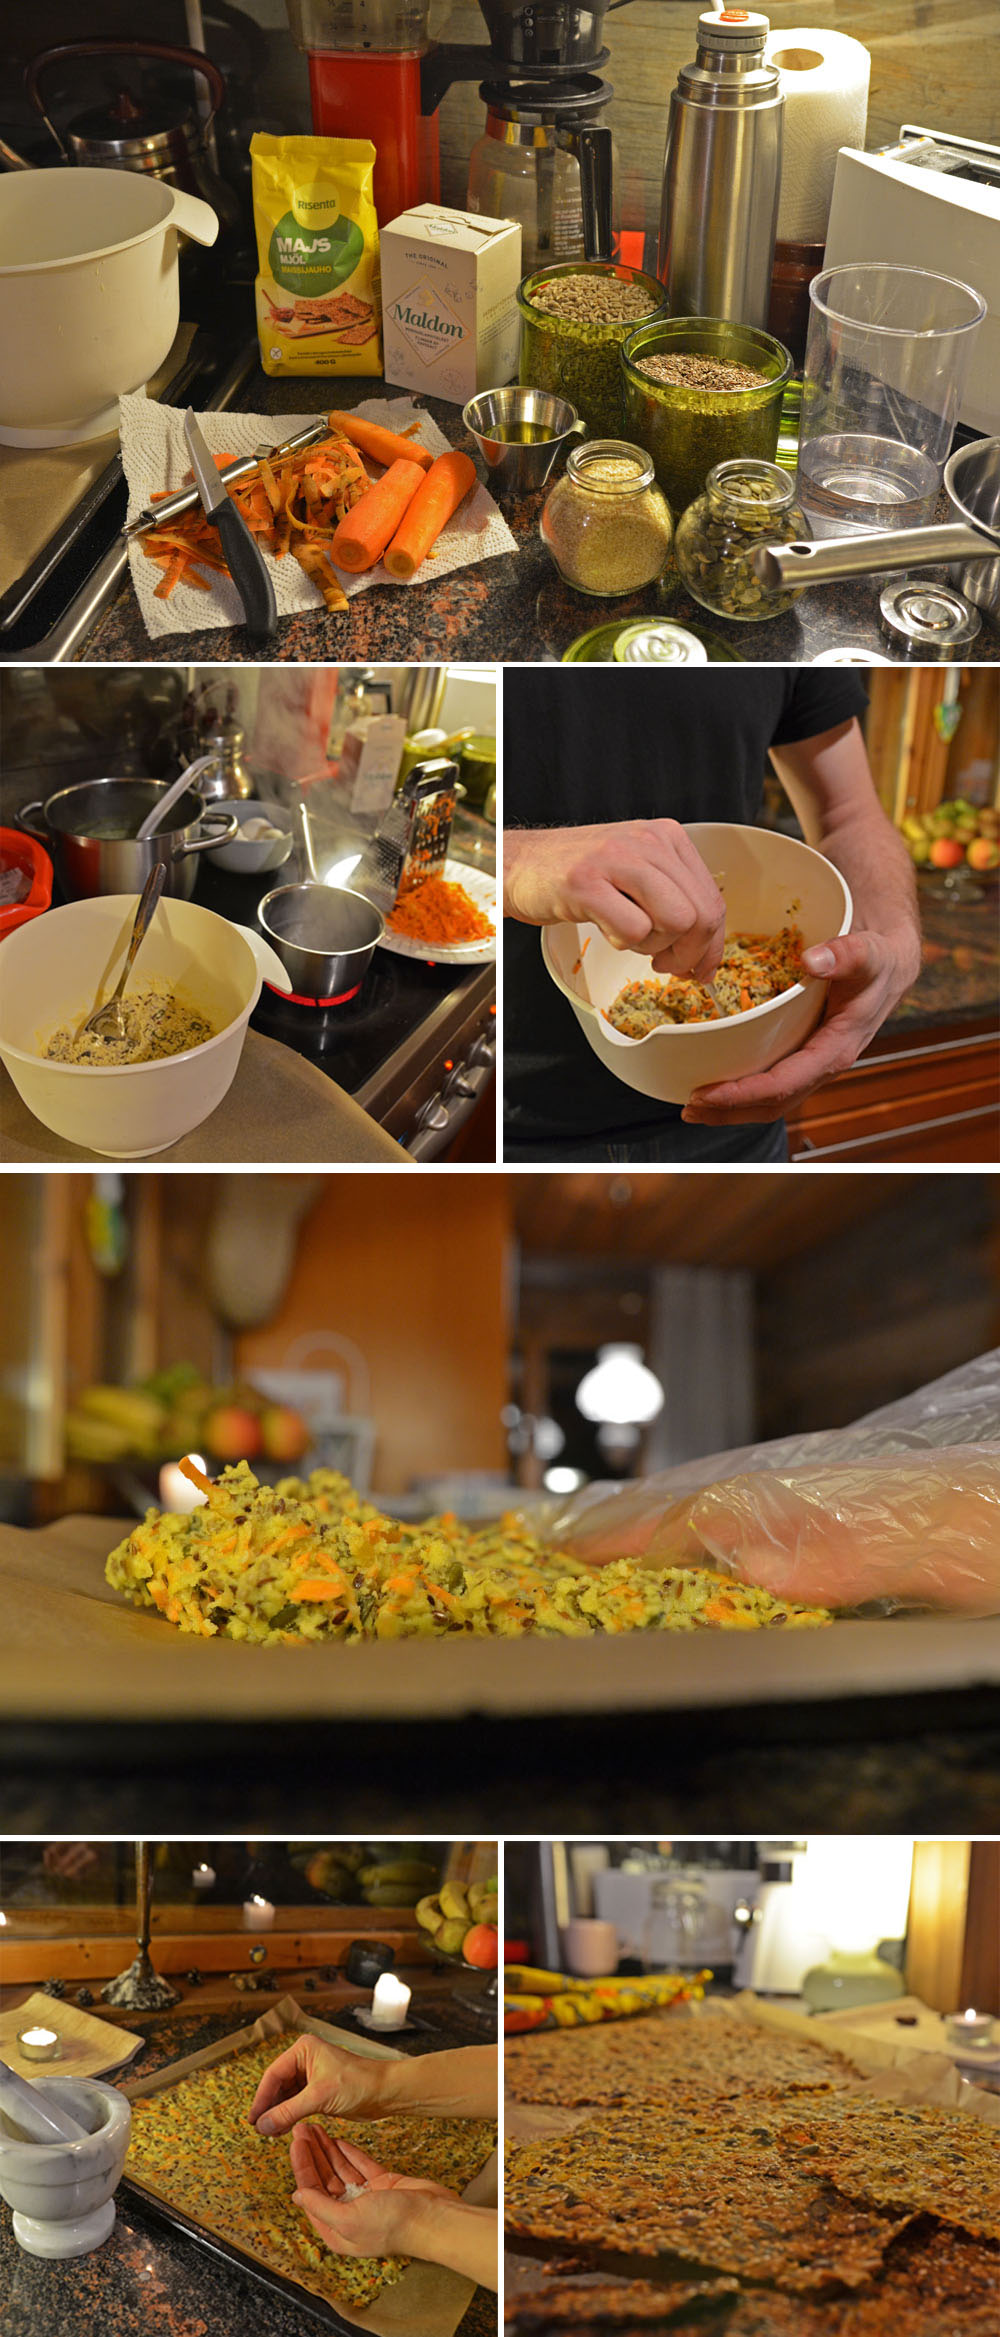 Seed-Carrot Crispbread Ingredients and How-To